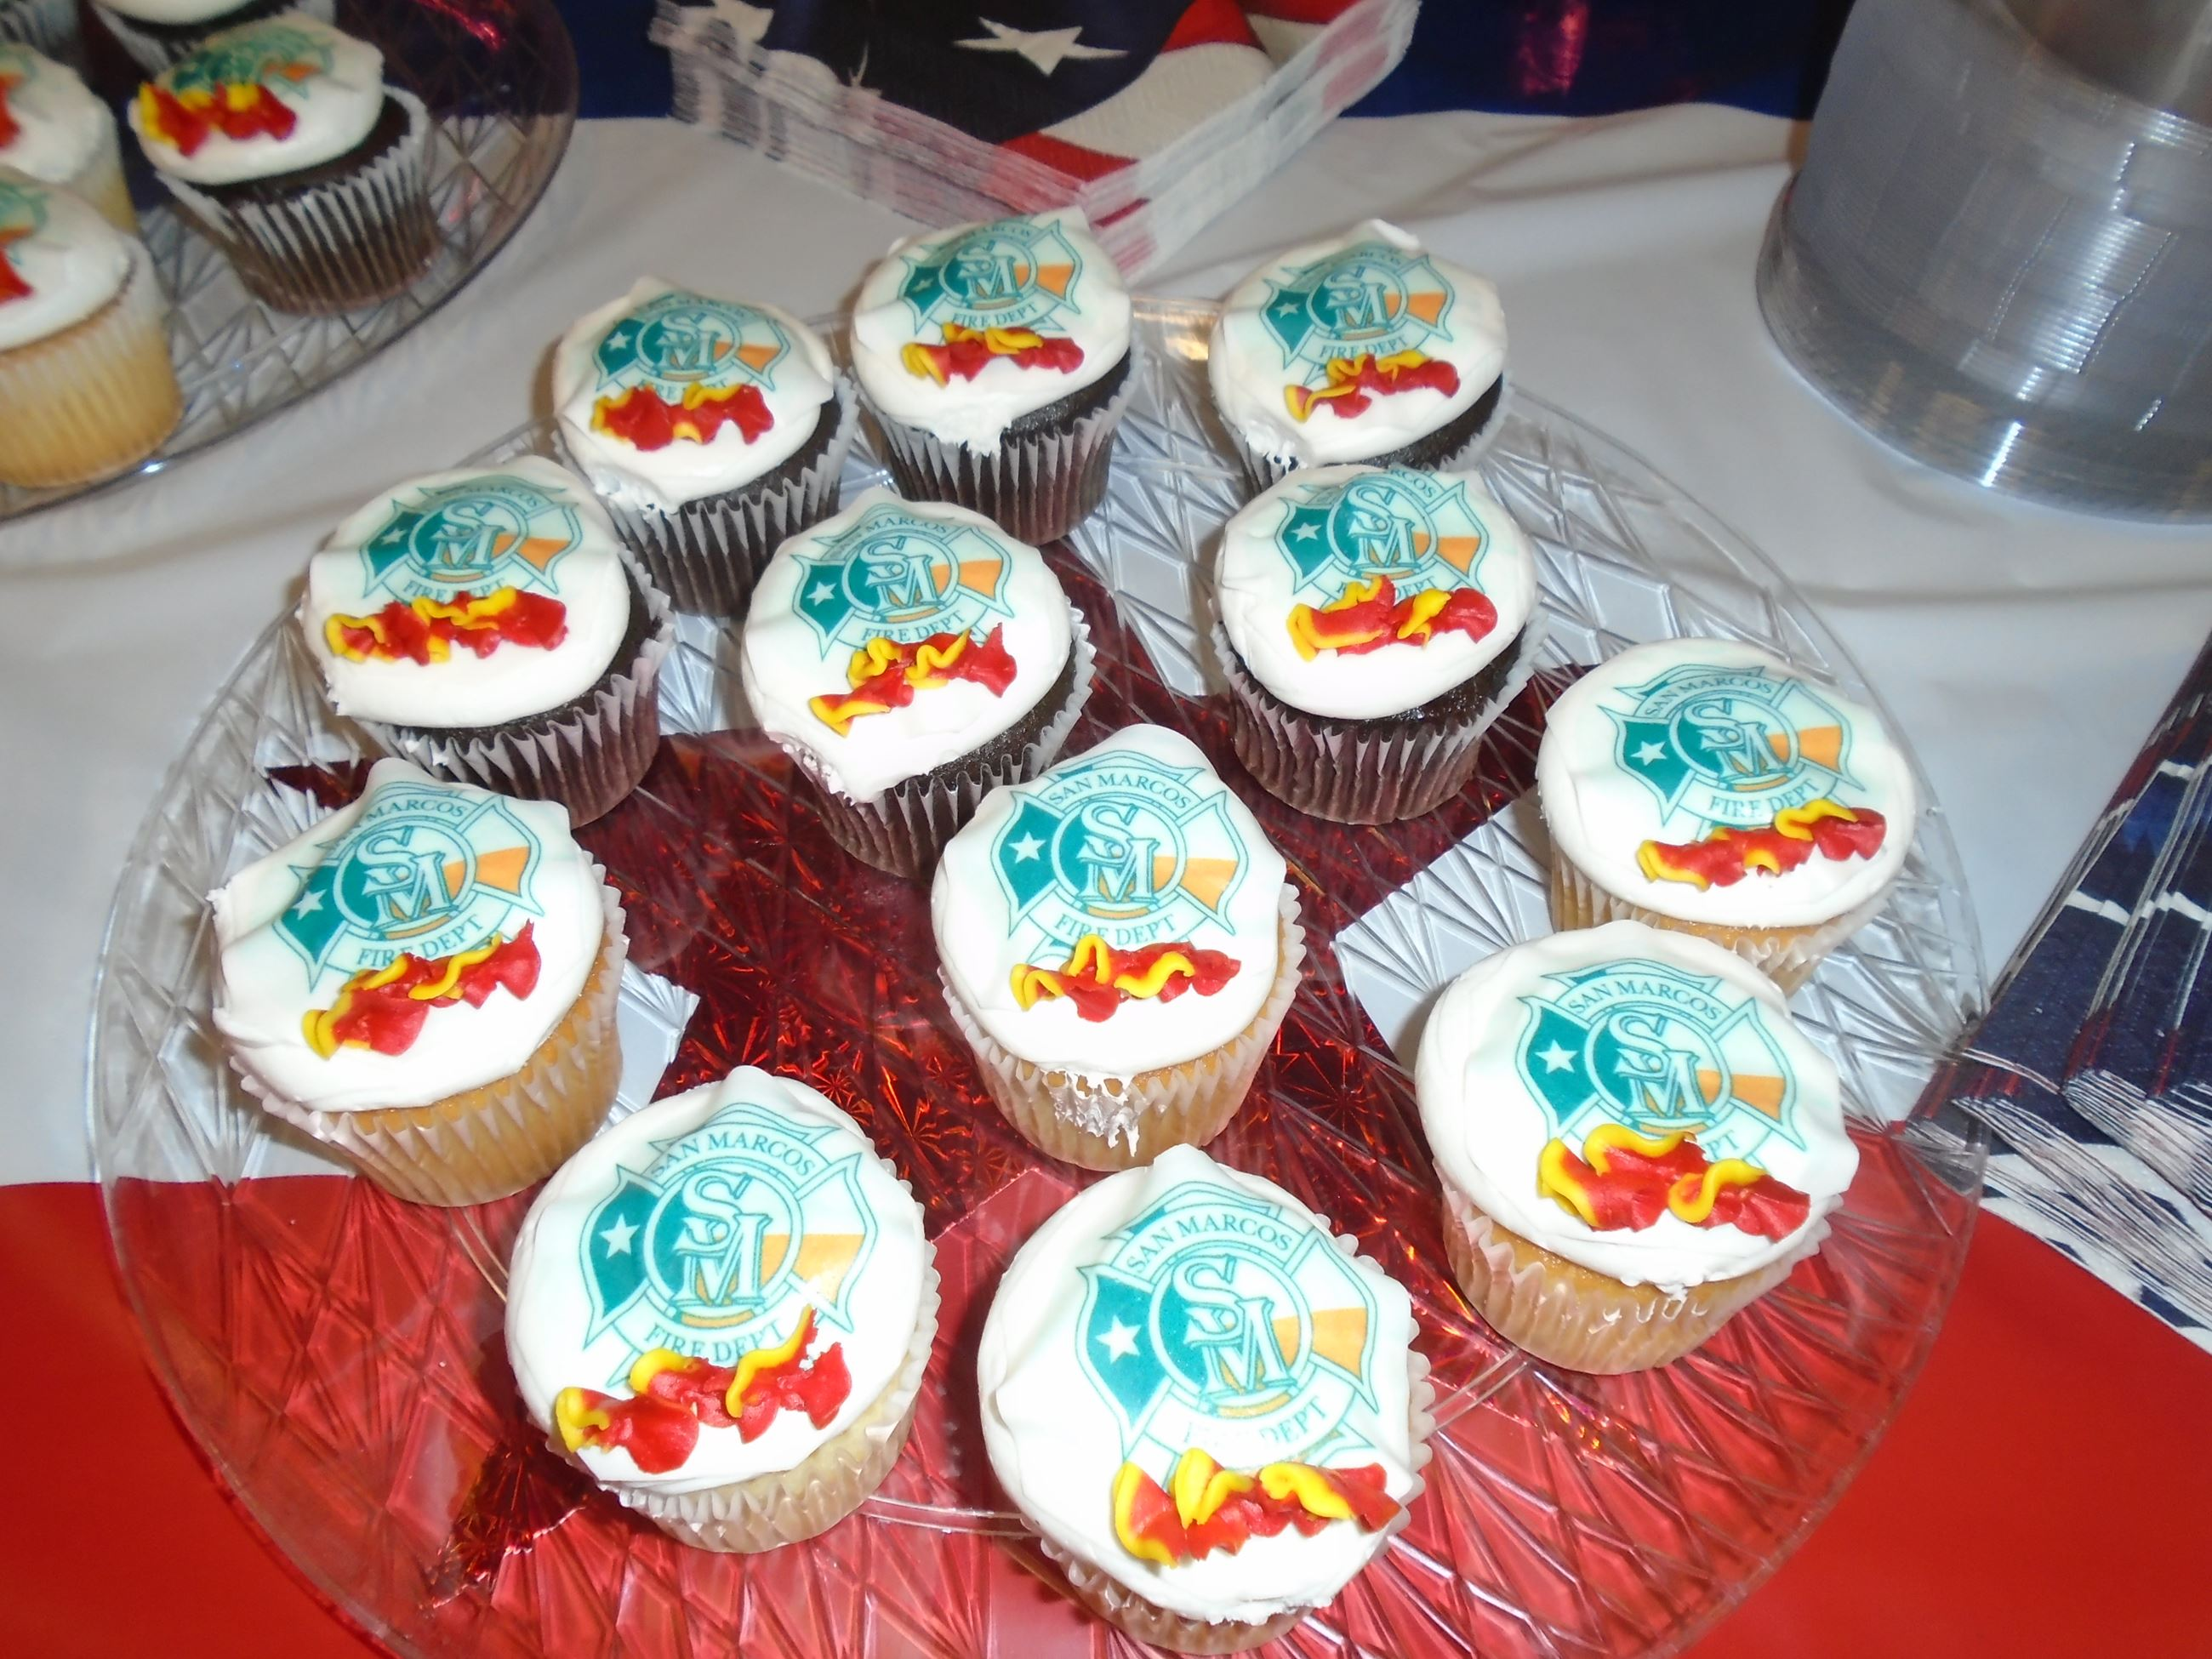 Custom designed cupcakes for award ceremony.